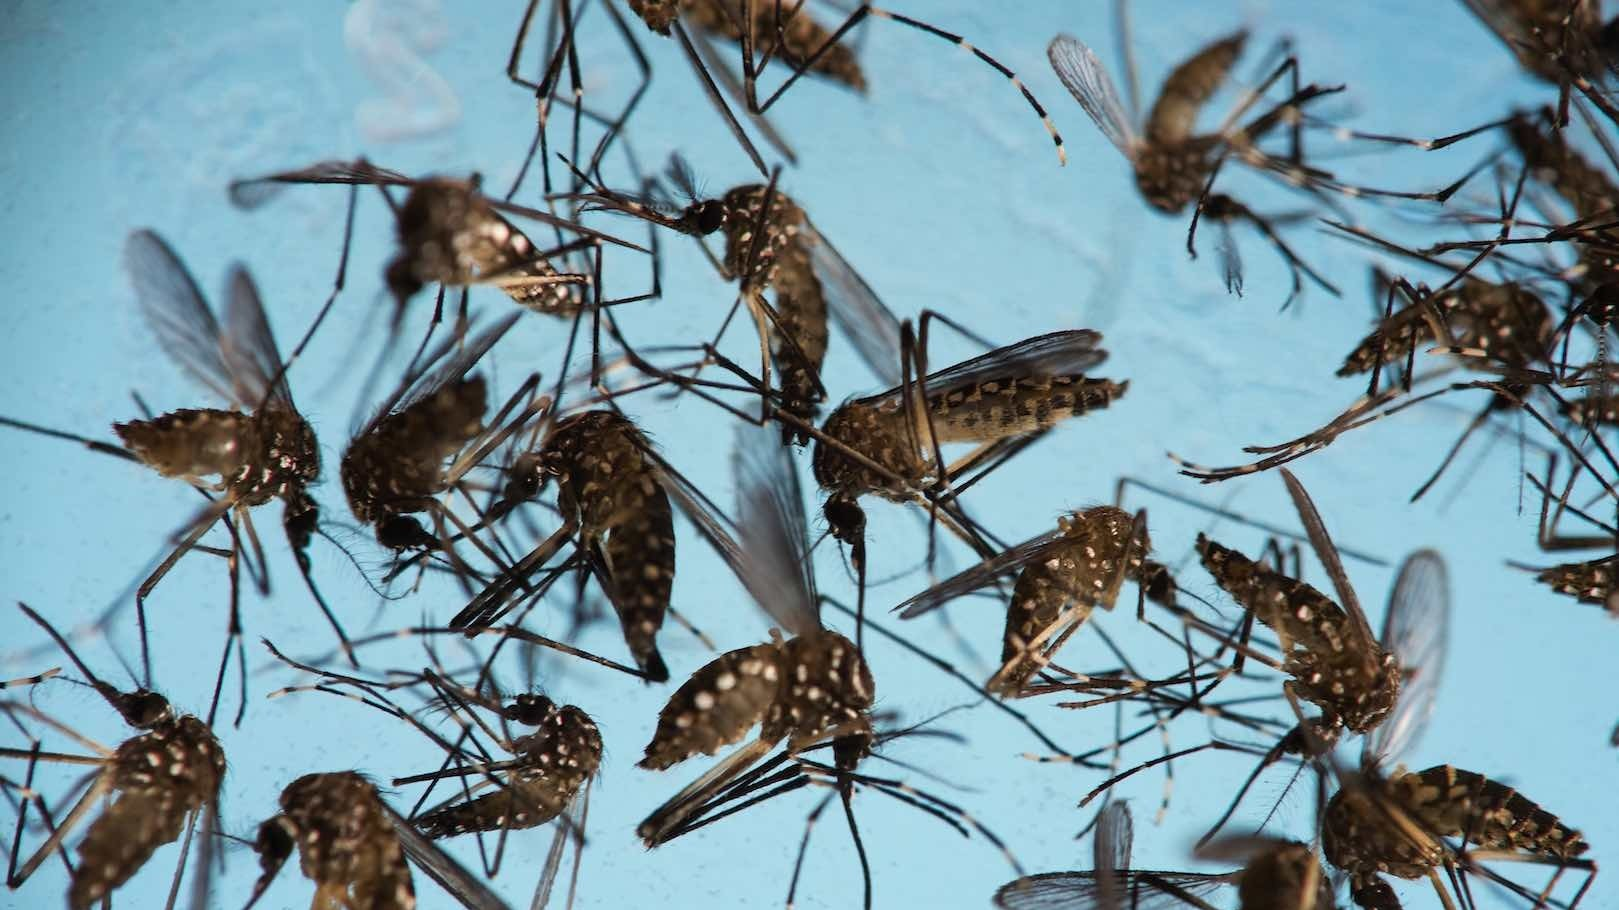 The solution to Zika could, in fact, be bacteria-armed mosquitoes